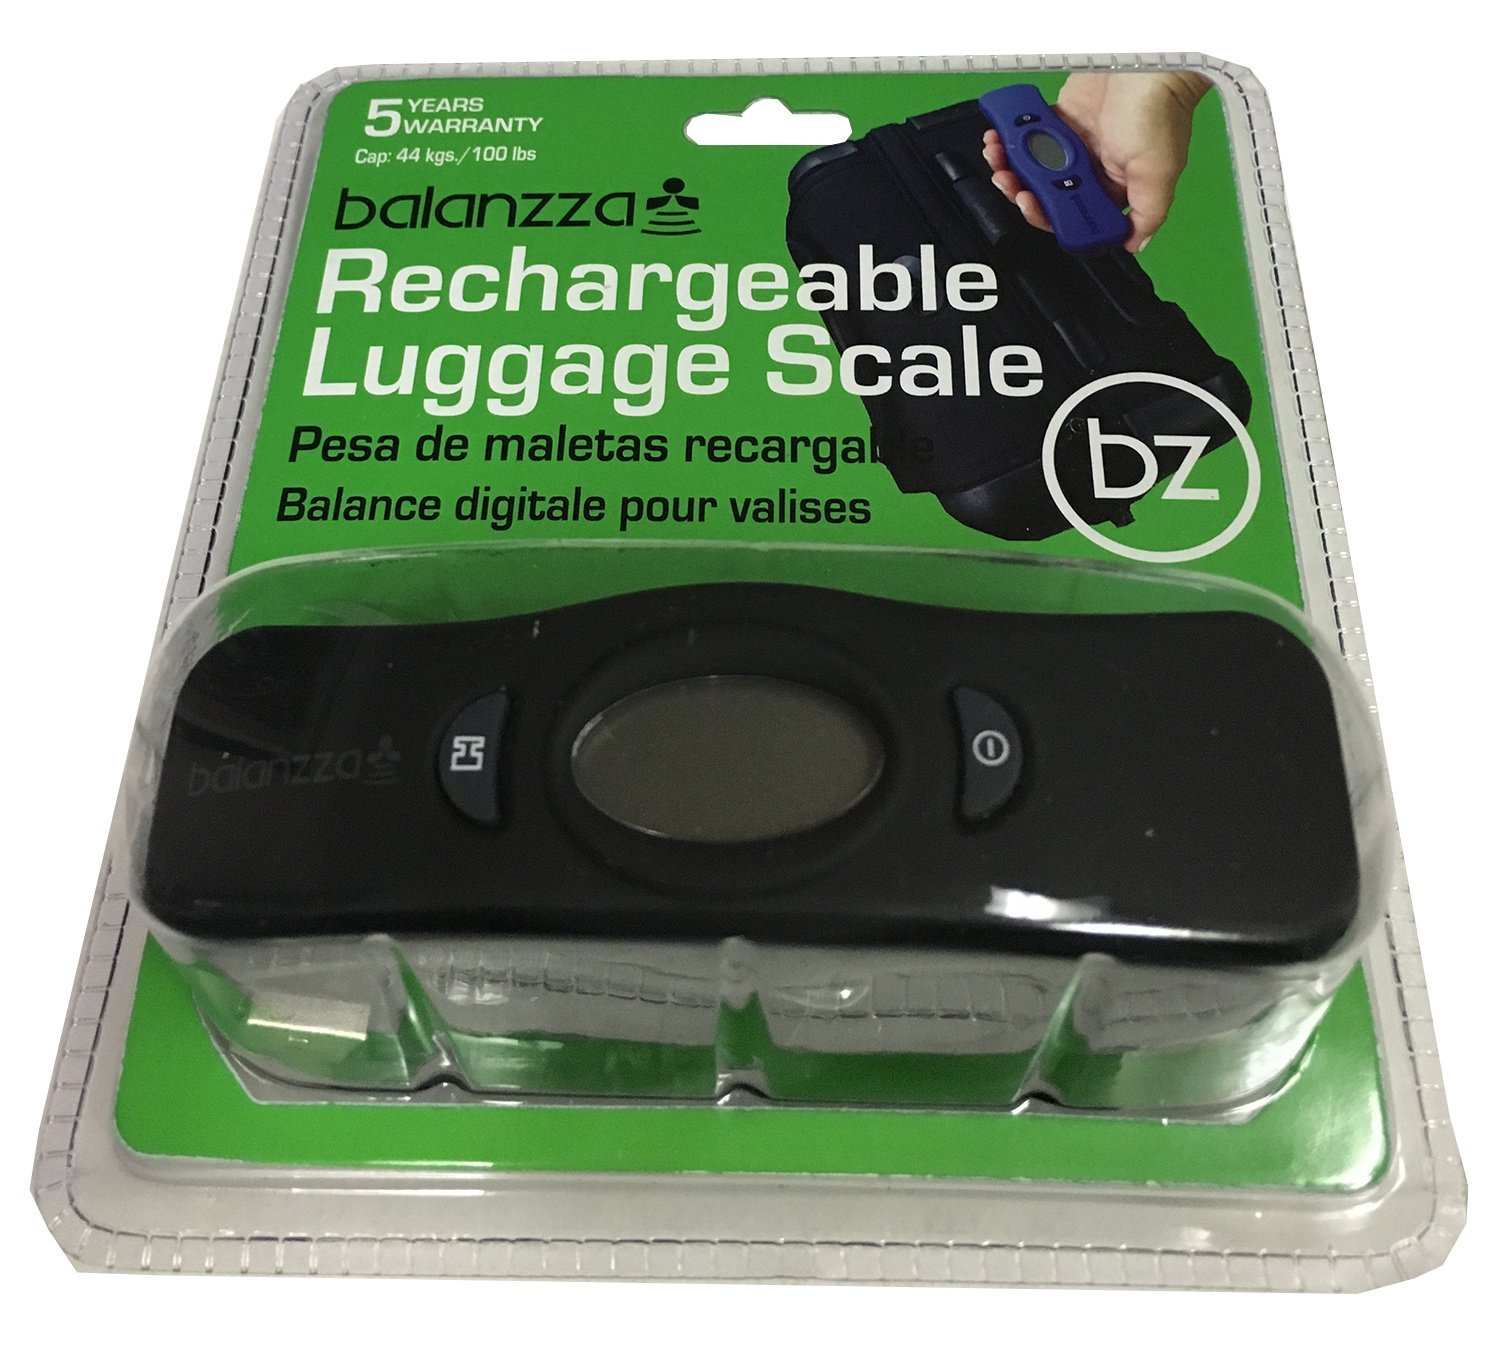 Balanzza MINI USB Rechargable Digital Luggage Scale Capacity with Backlight Display, BZ400U 5 years,Black,One Size